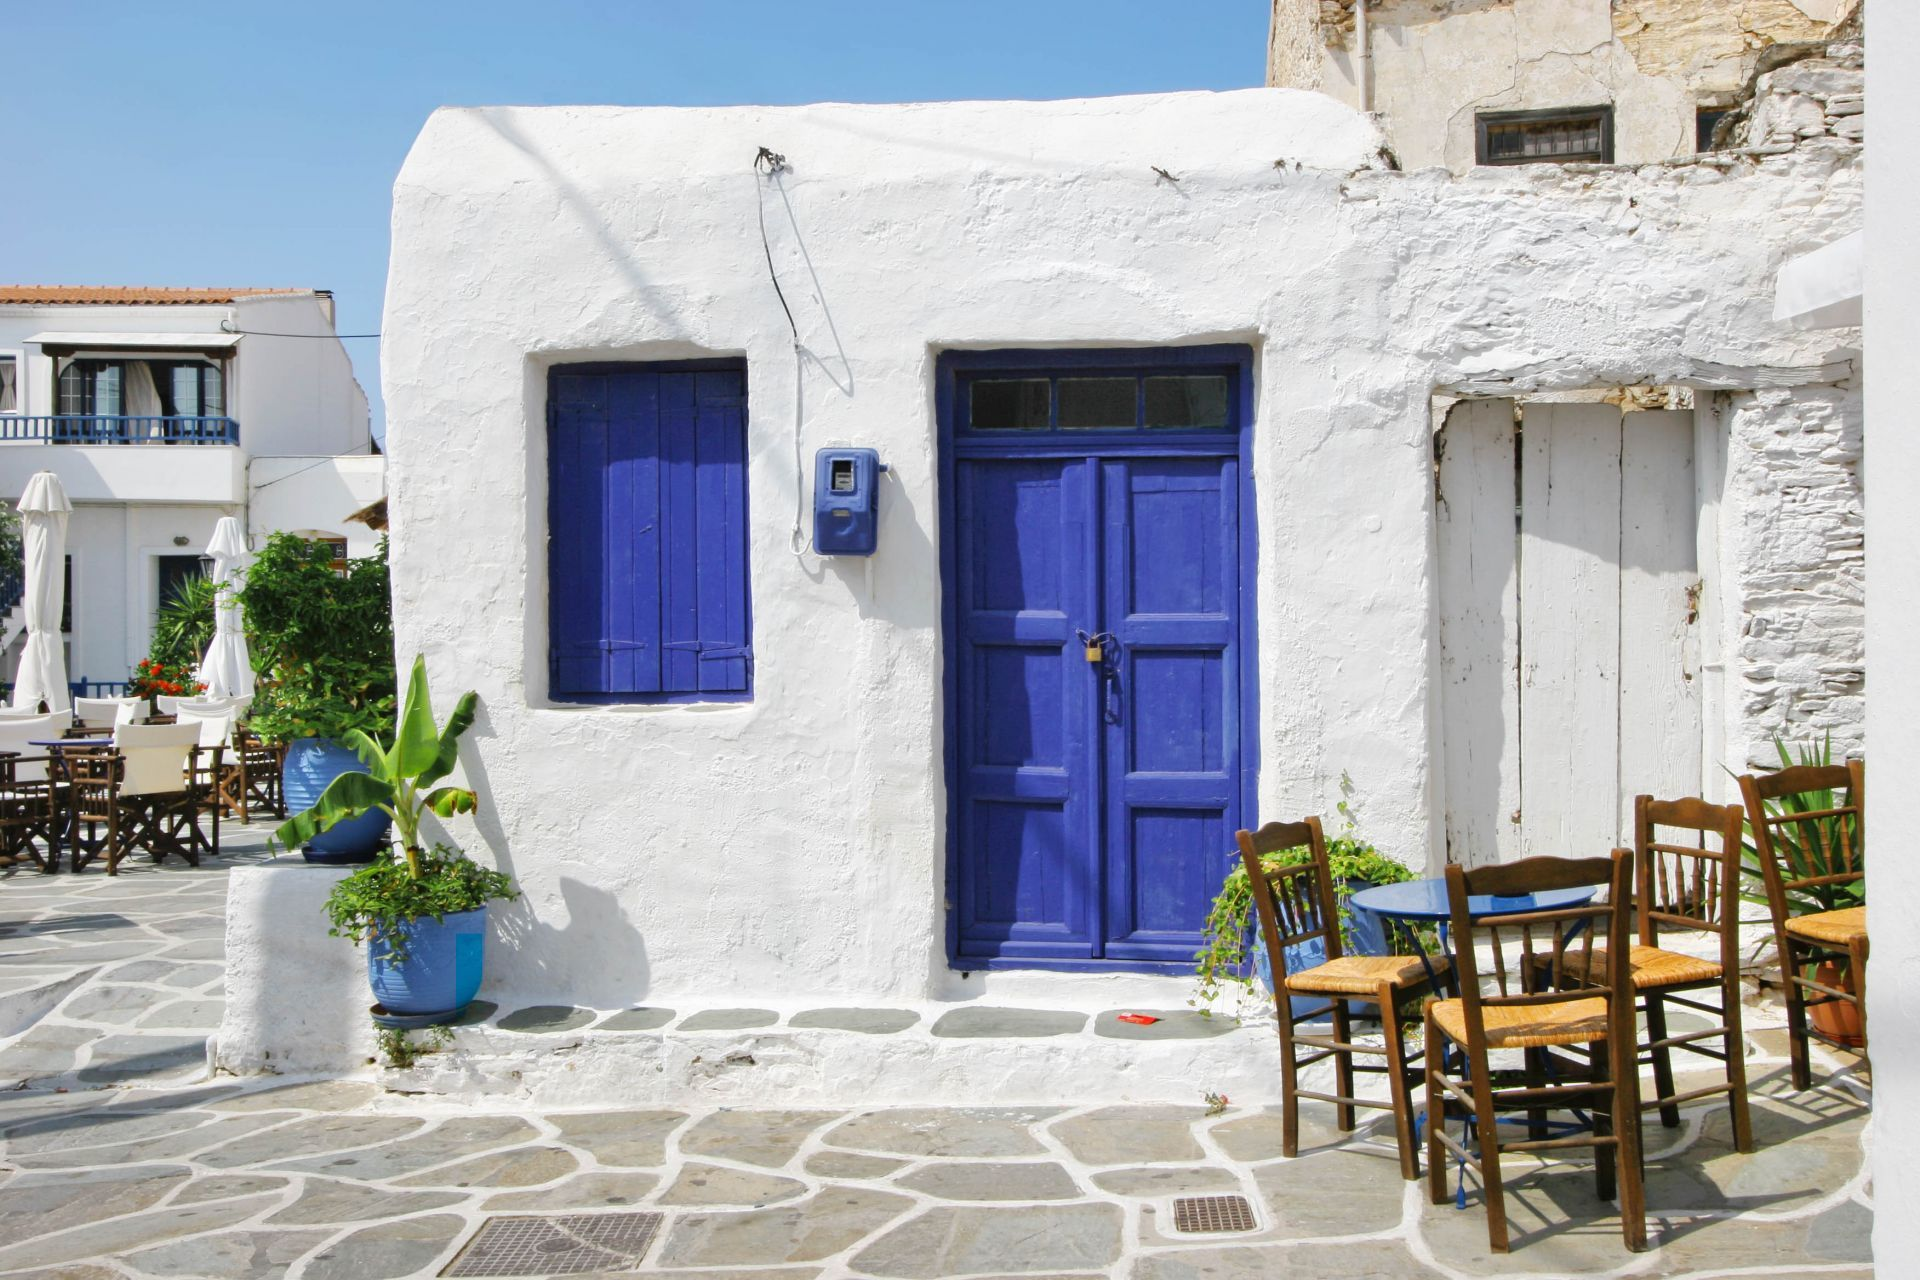 Places to eat and drink in Kythnos